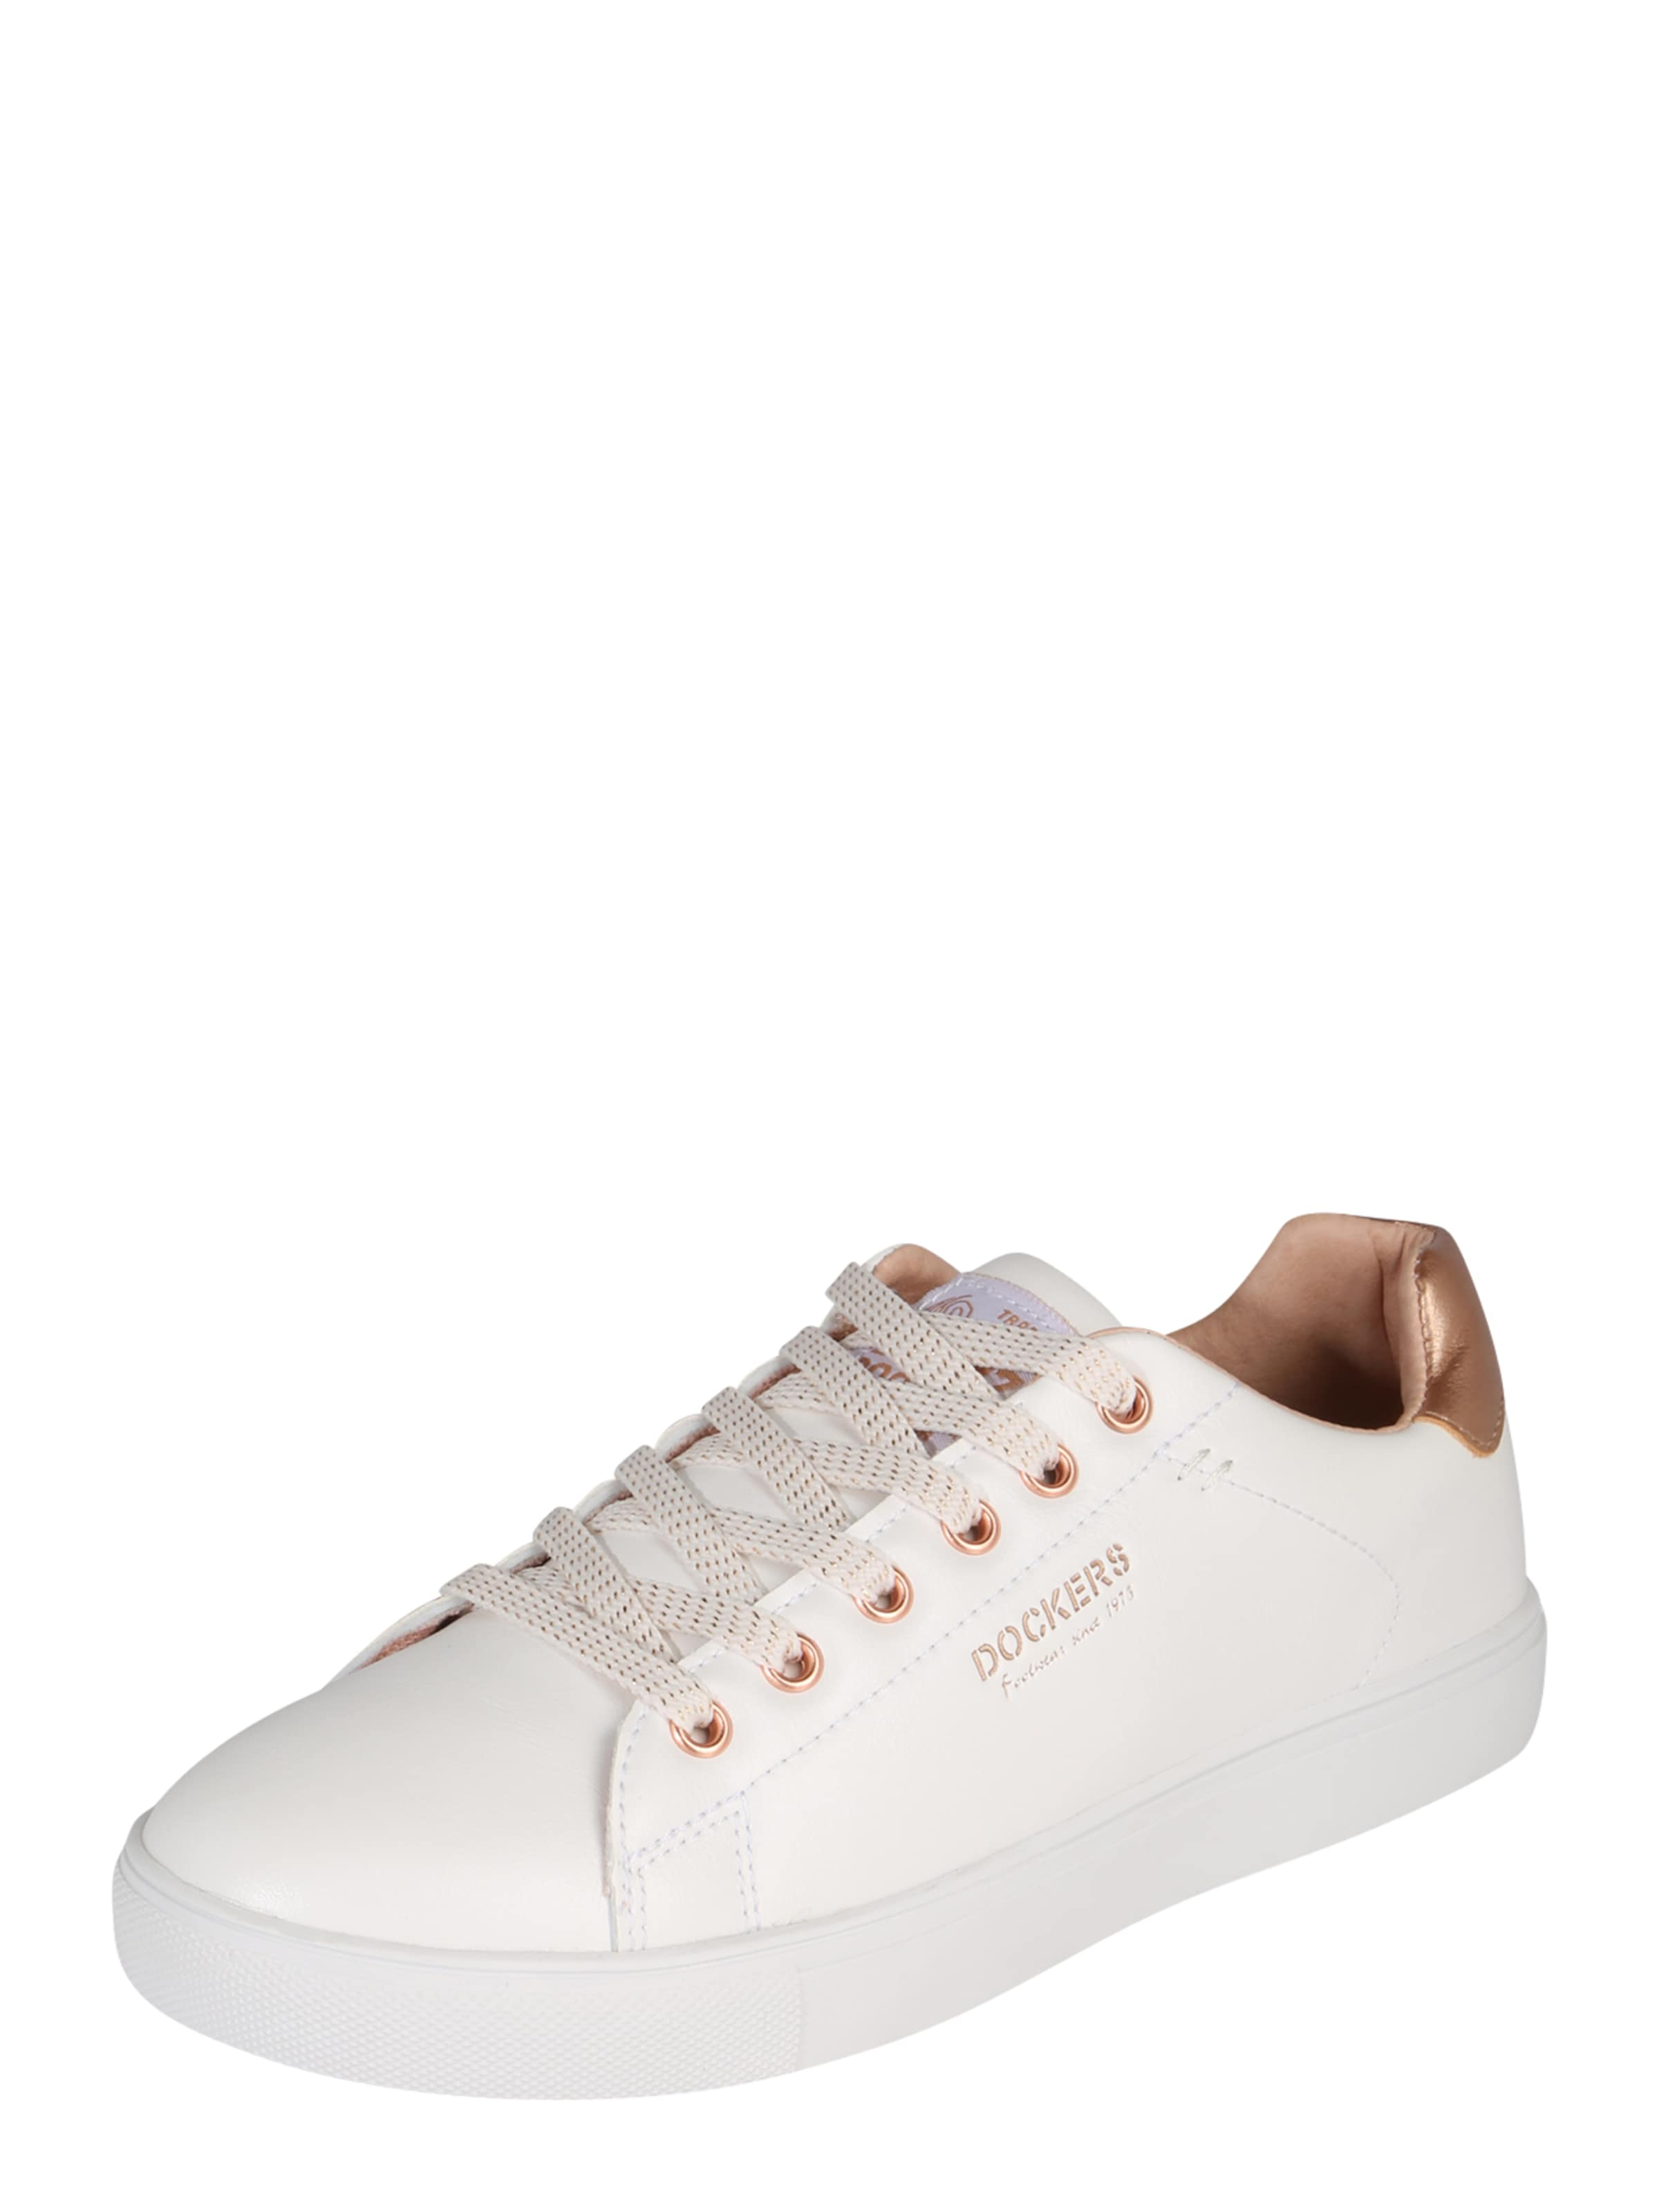 Dockers by Gerli Sneaker in Lederoptik